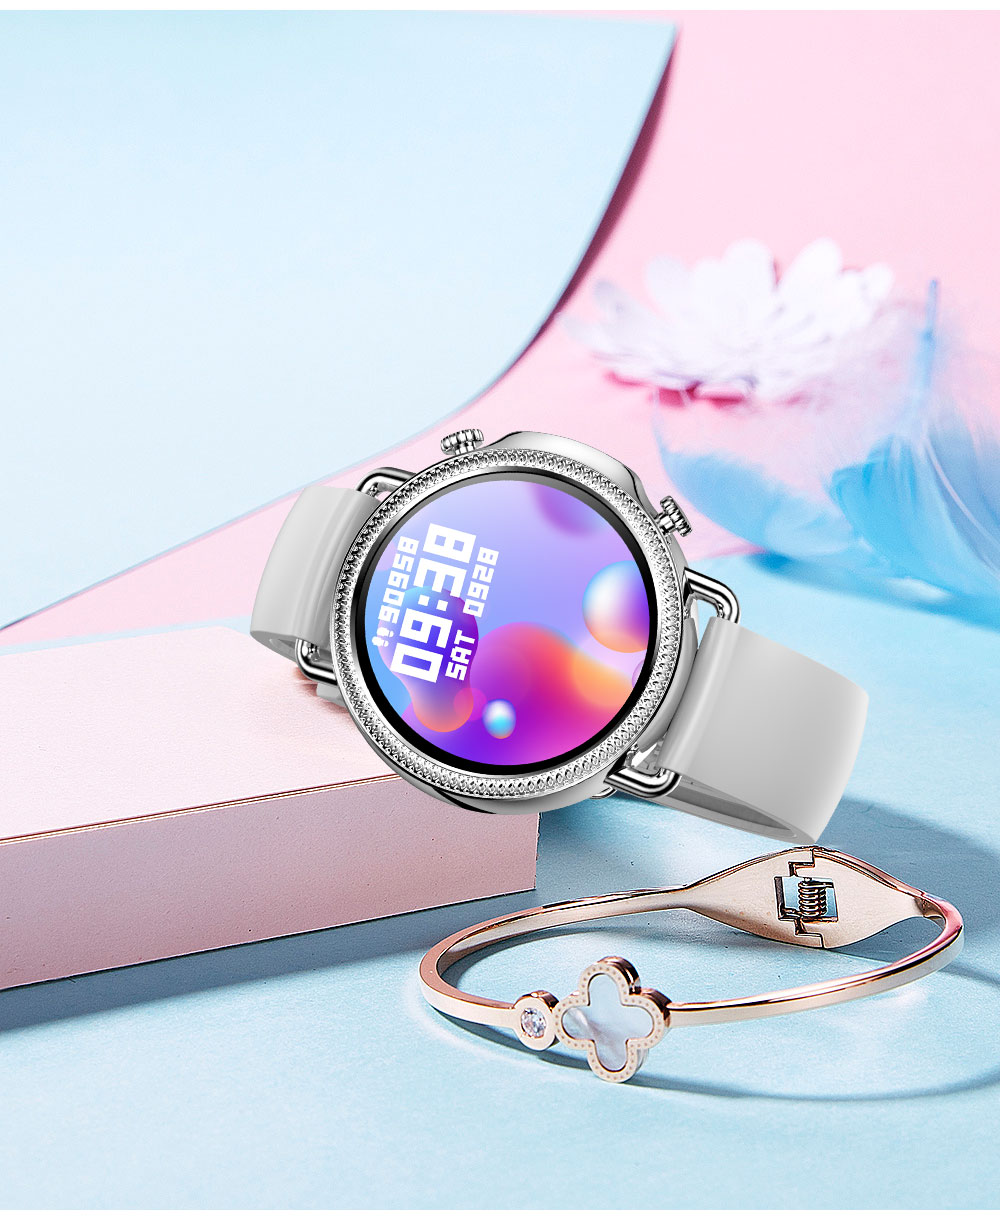 He29de6d329e945fabd35d0e5dc184c4ds 2021 Women Smart Watch 1.28 inch HD Screen IP67 Waterproof Lady's Watches Body Temperature Heart Rate Monitor PK V23